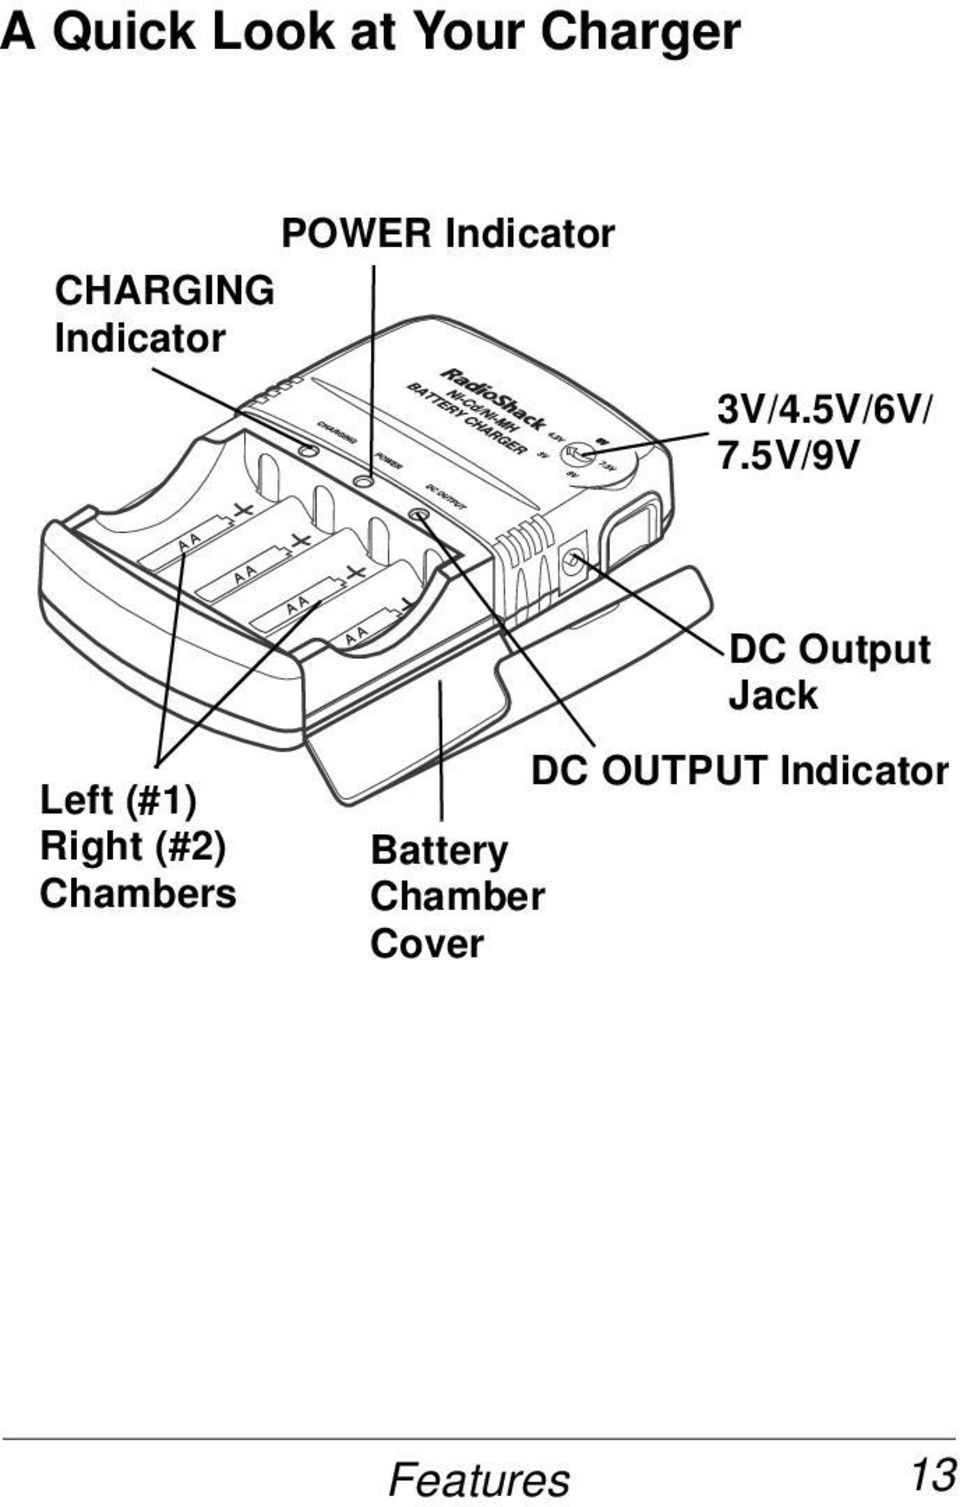 5V/9V Left (#1) Right (#2) Chambers Battery